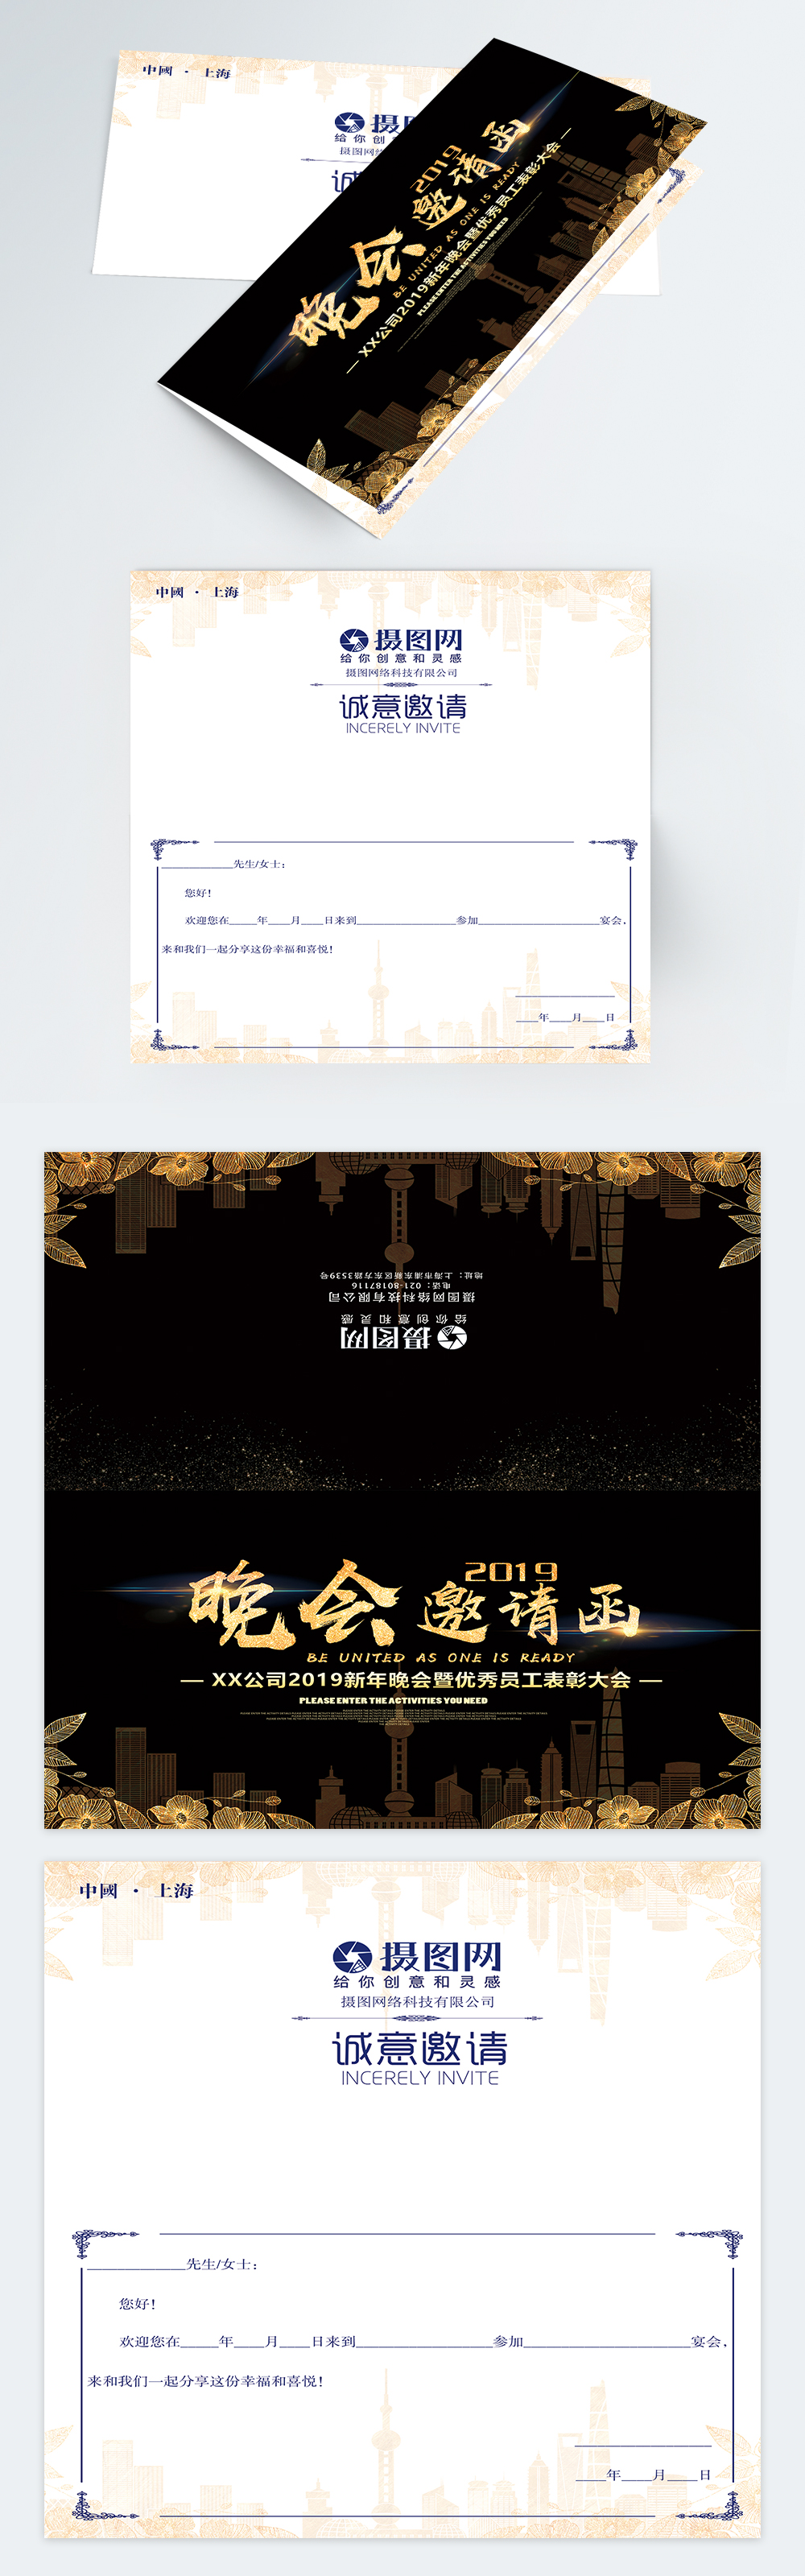 company new year party invitation letter poster